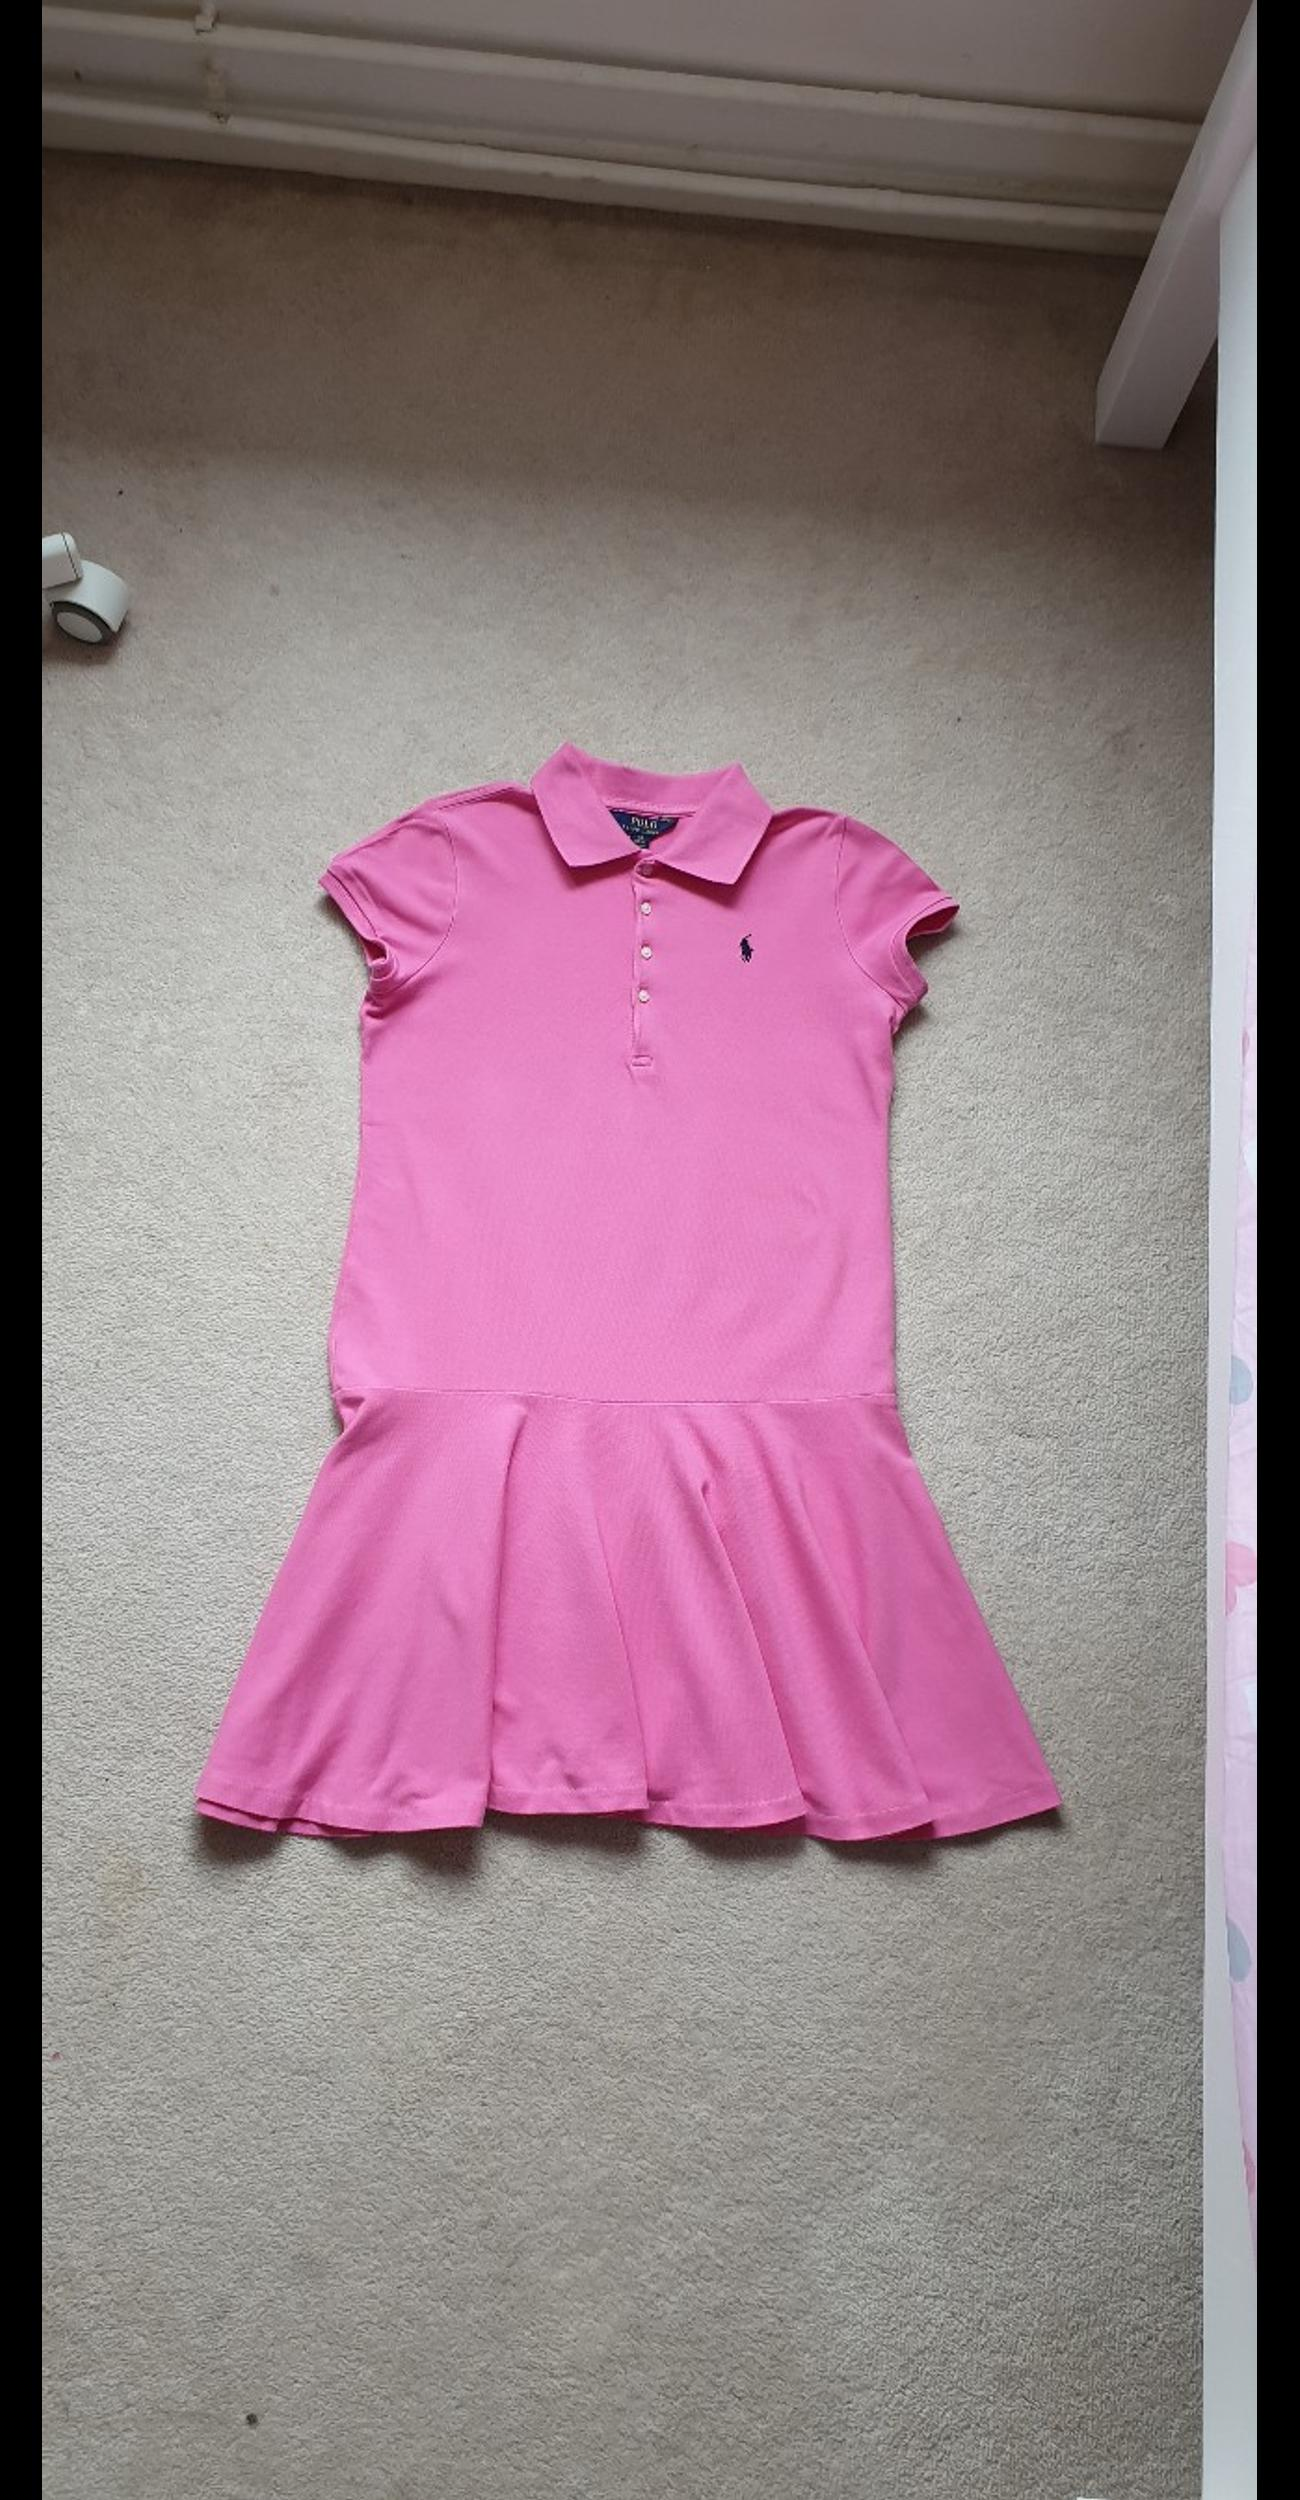 Ralph Lauren girl dress age 12-14 years in excellent condition . Used only once or twice . The dress length is 81 cm The measurement from armpit to the other armpit is 44 cm. Please have a look at my other items. Thank you.